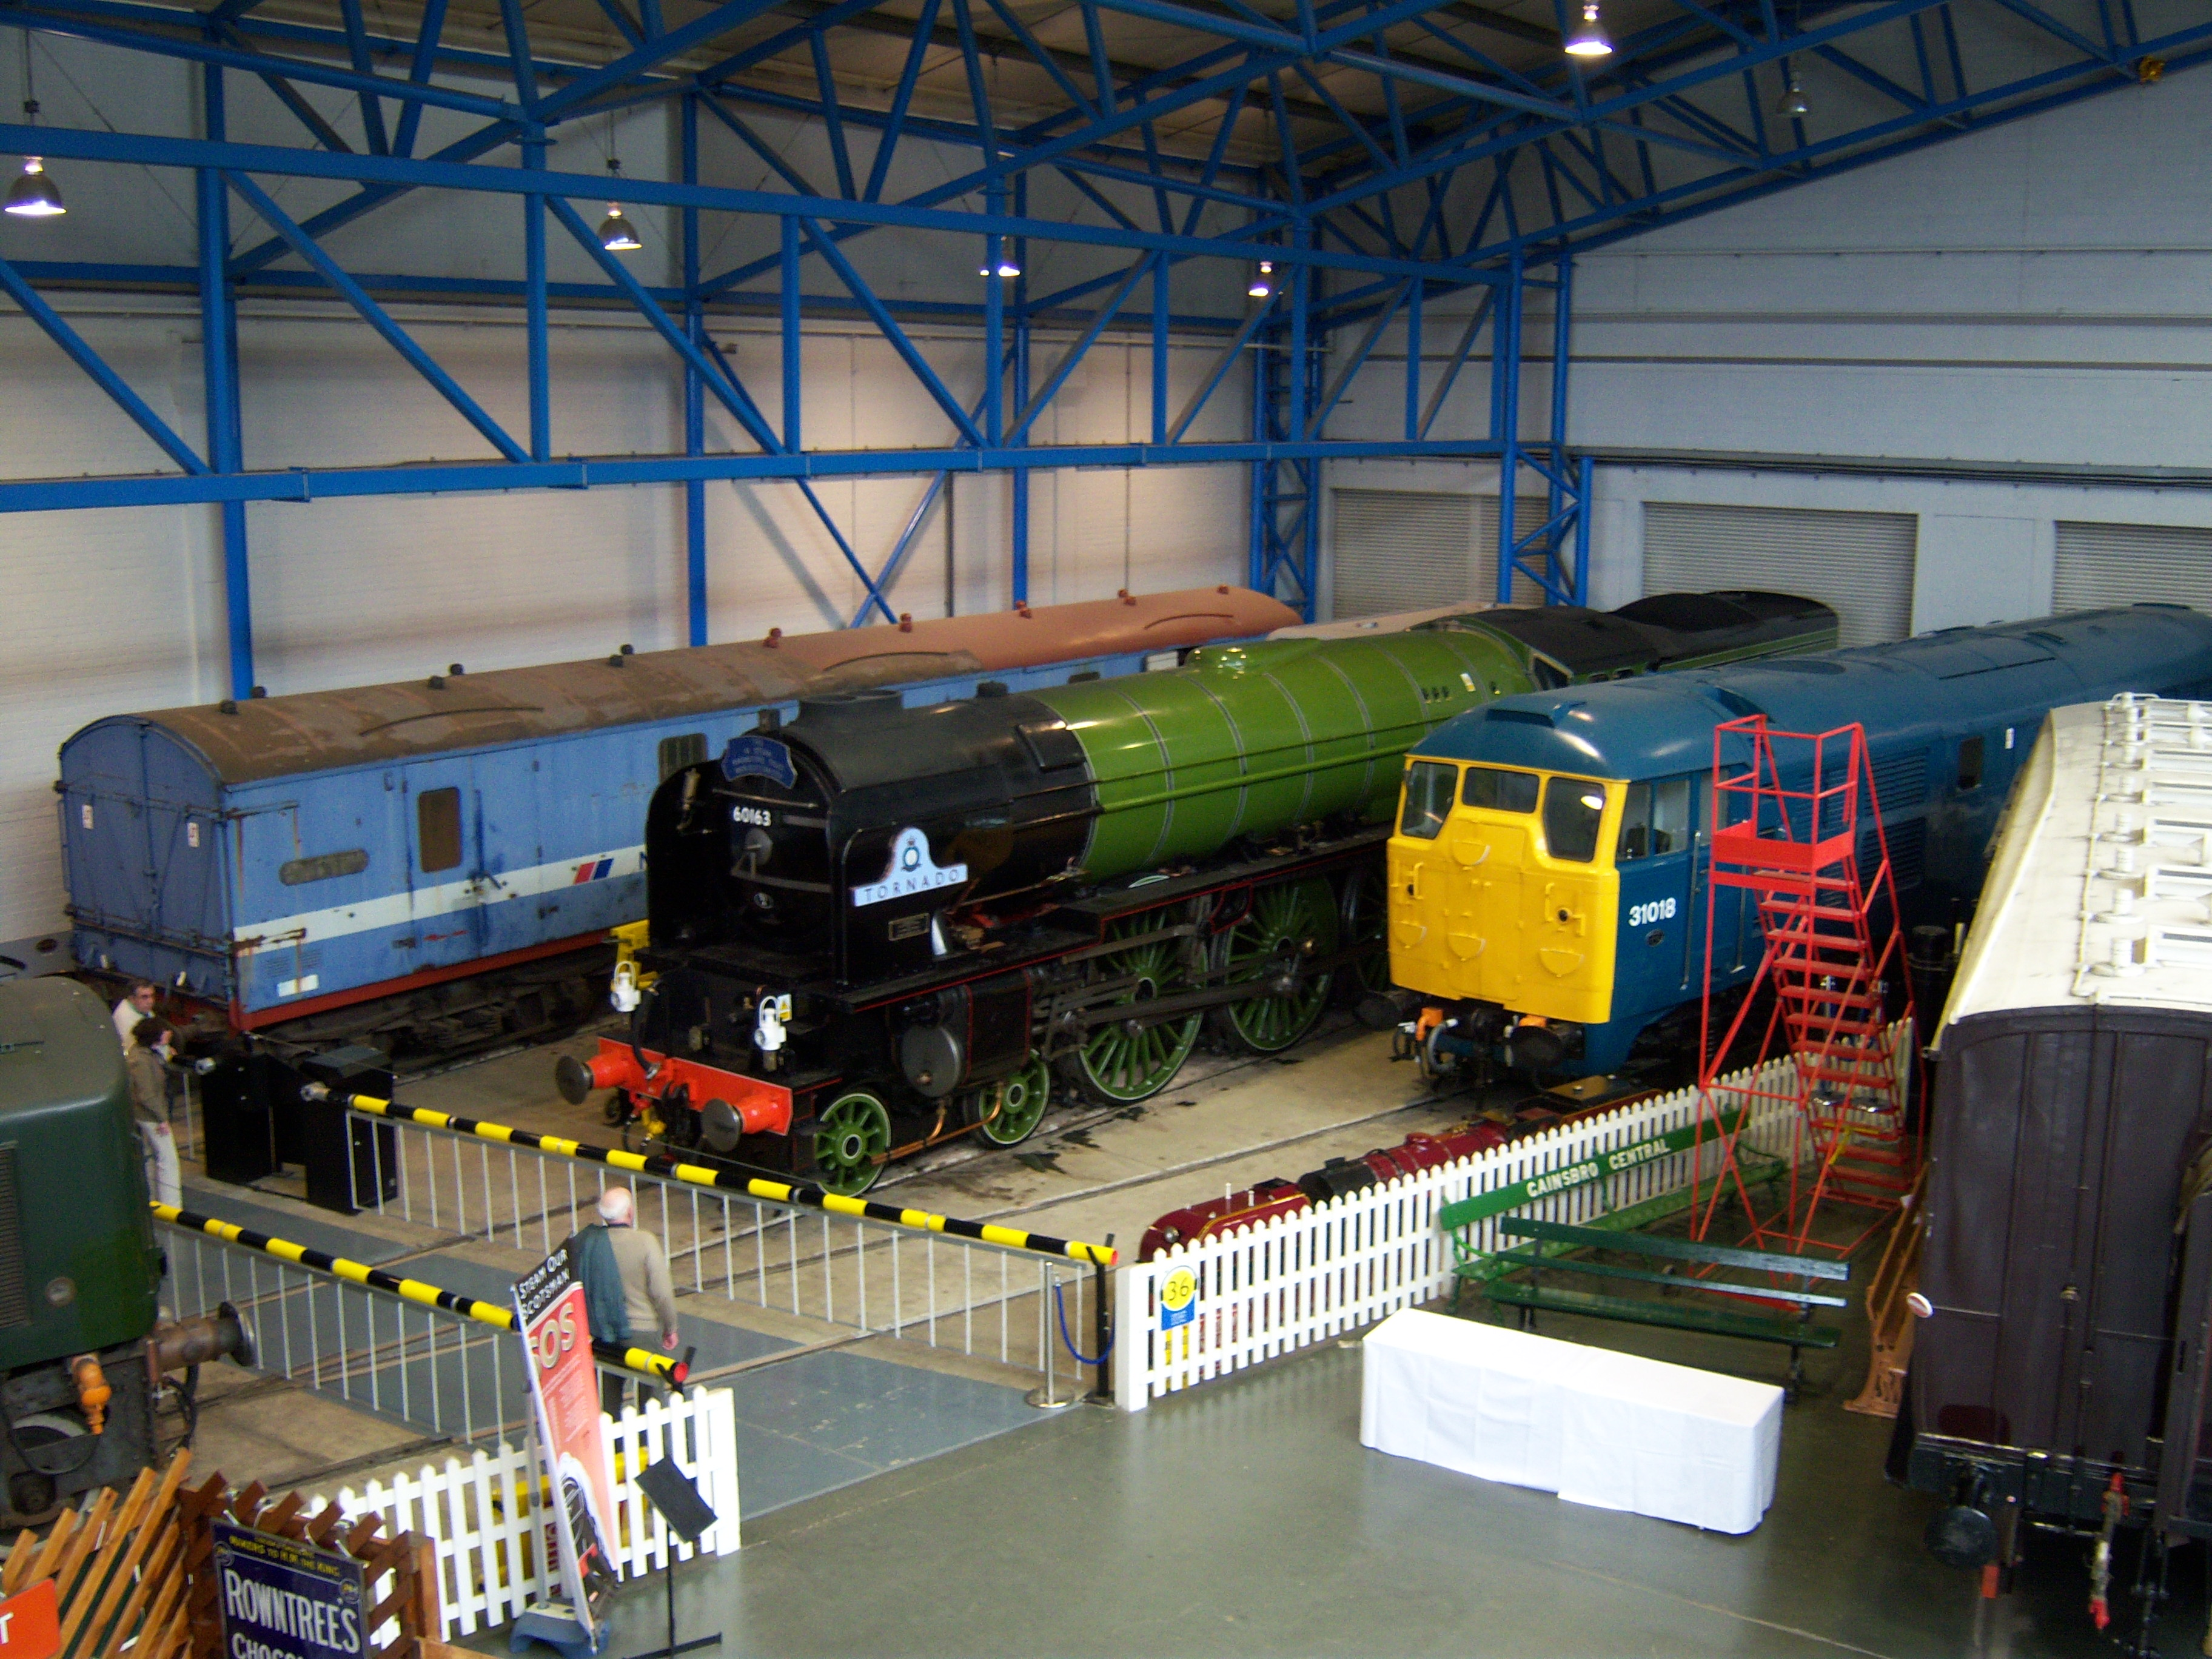 File:National Railway Museum York 15 March 2009 pic 1.jpg ...